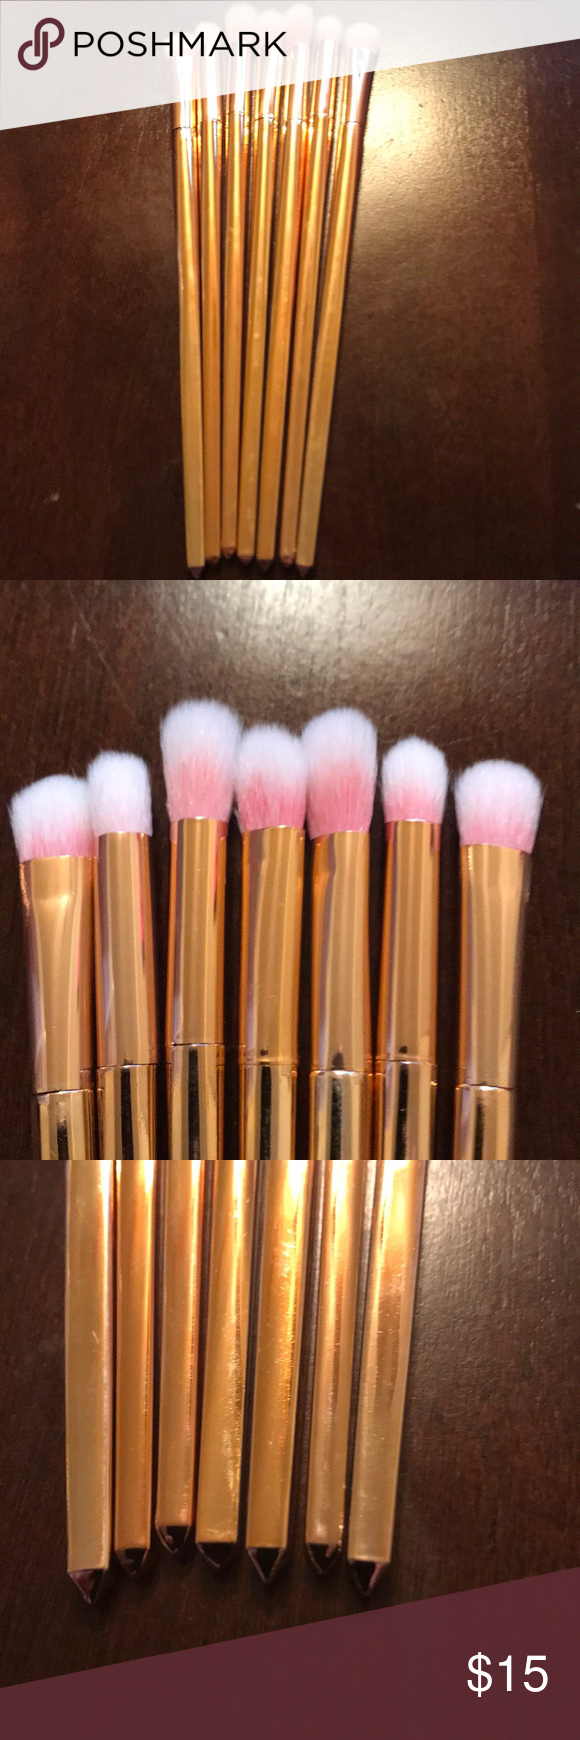 New 7 piece make up brushes NWT Makeup brushes, Makeup